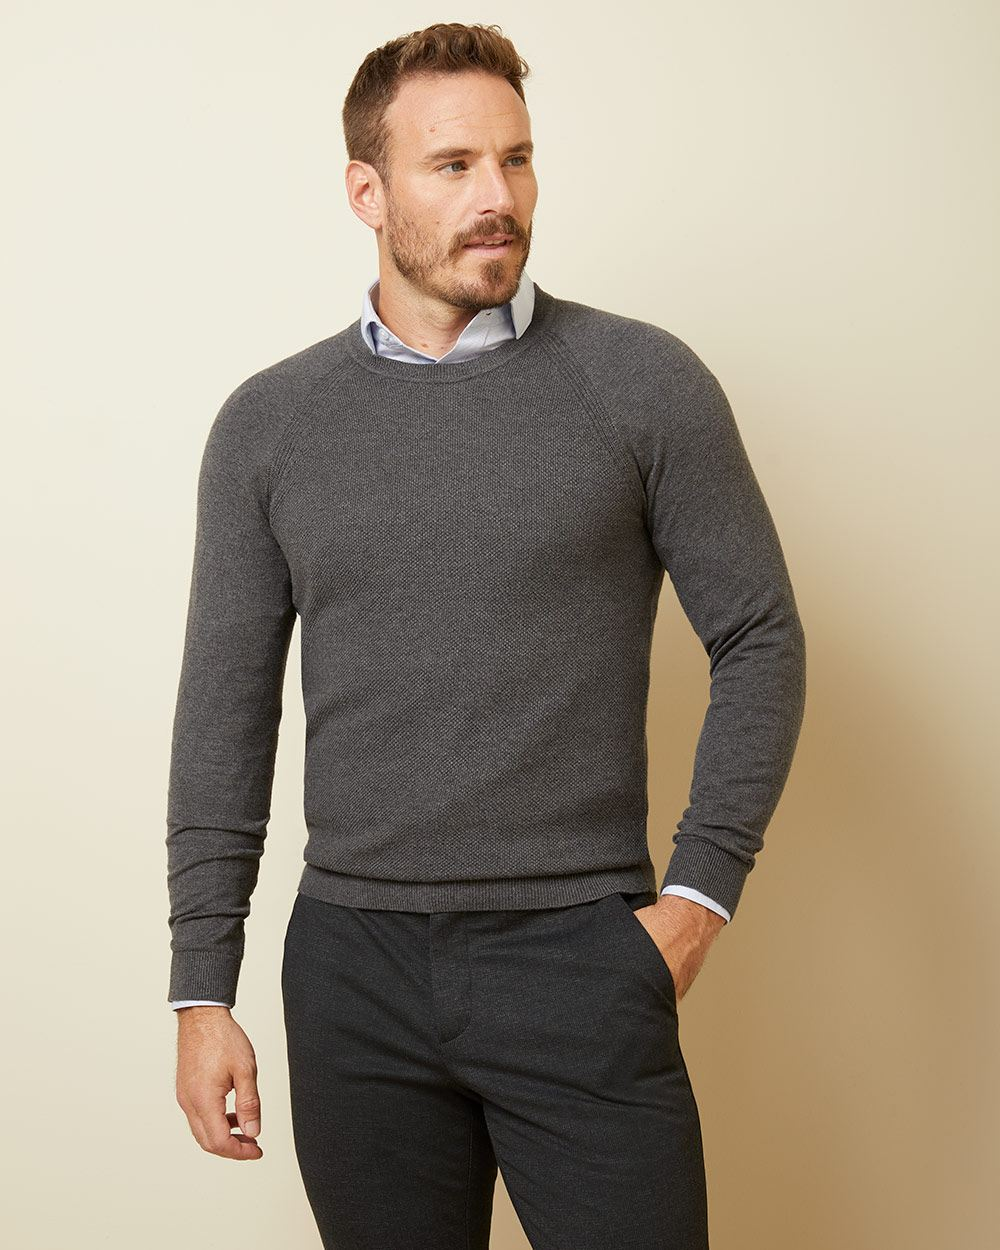 Raglan sleeve crew-neck sweater